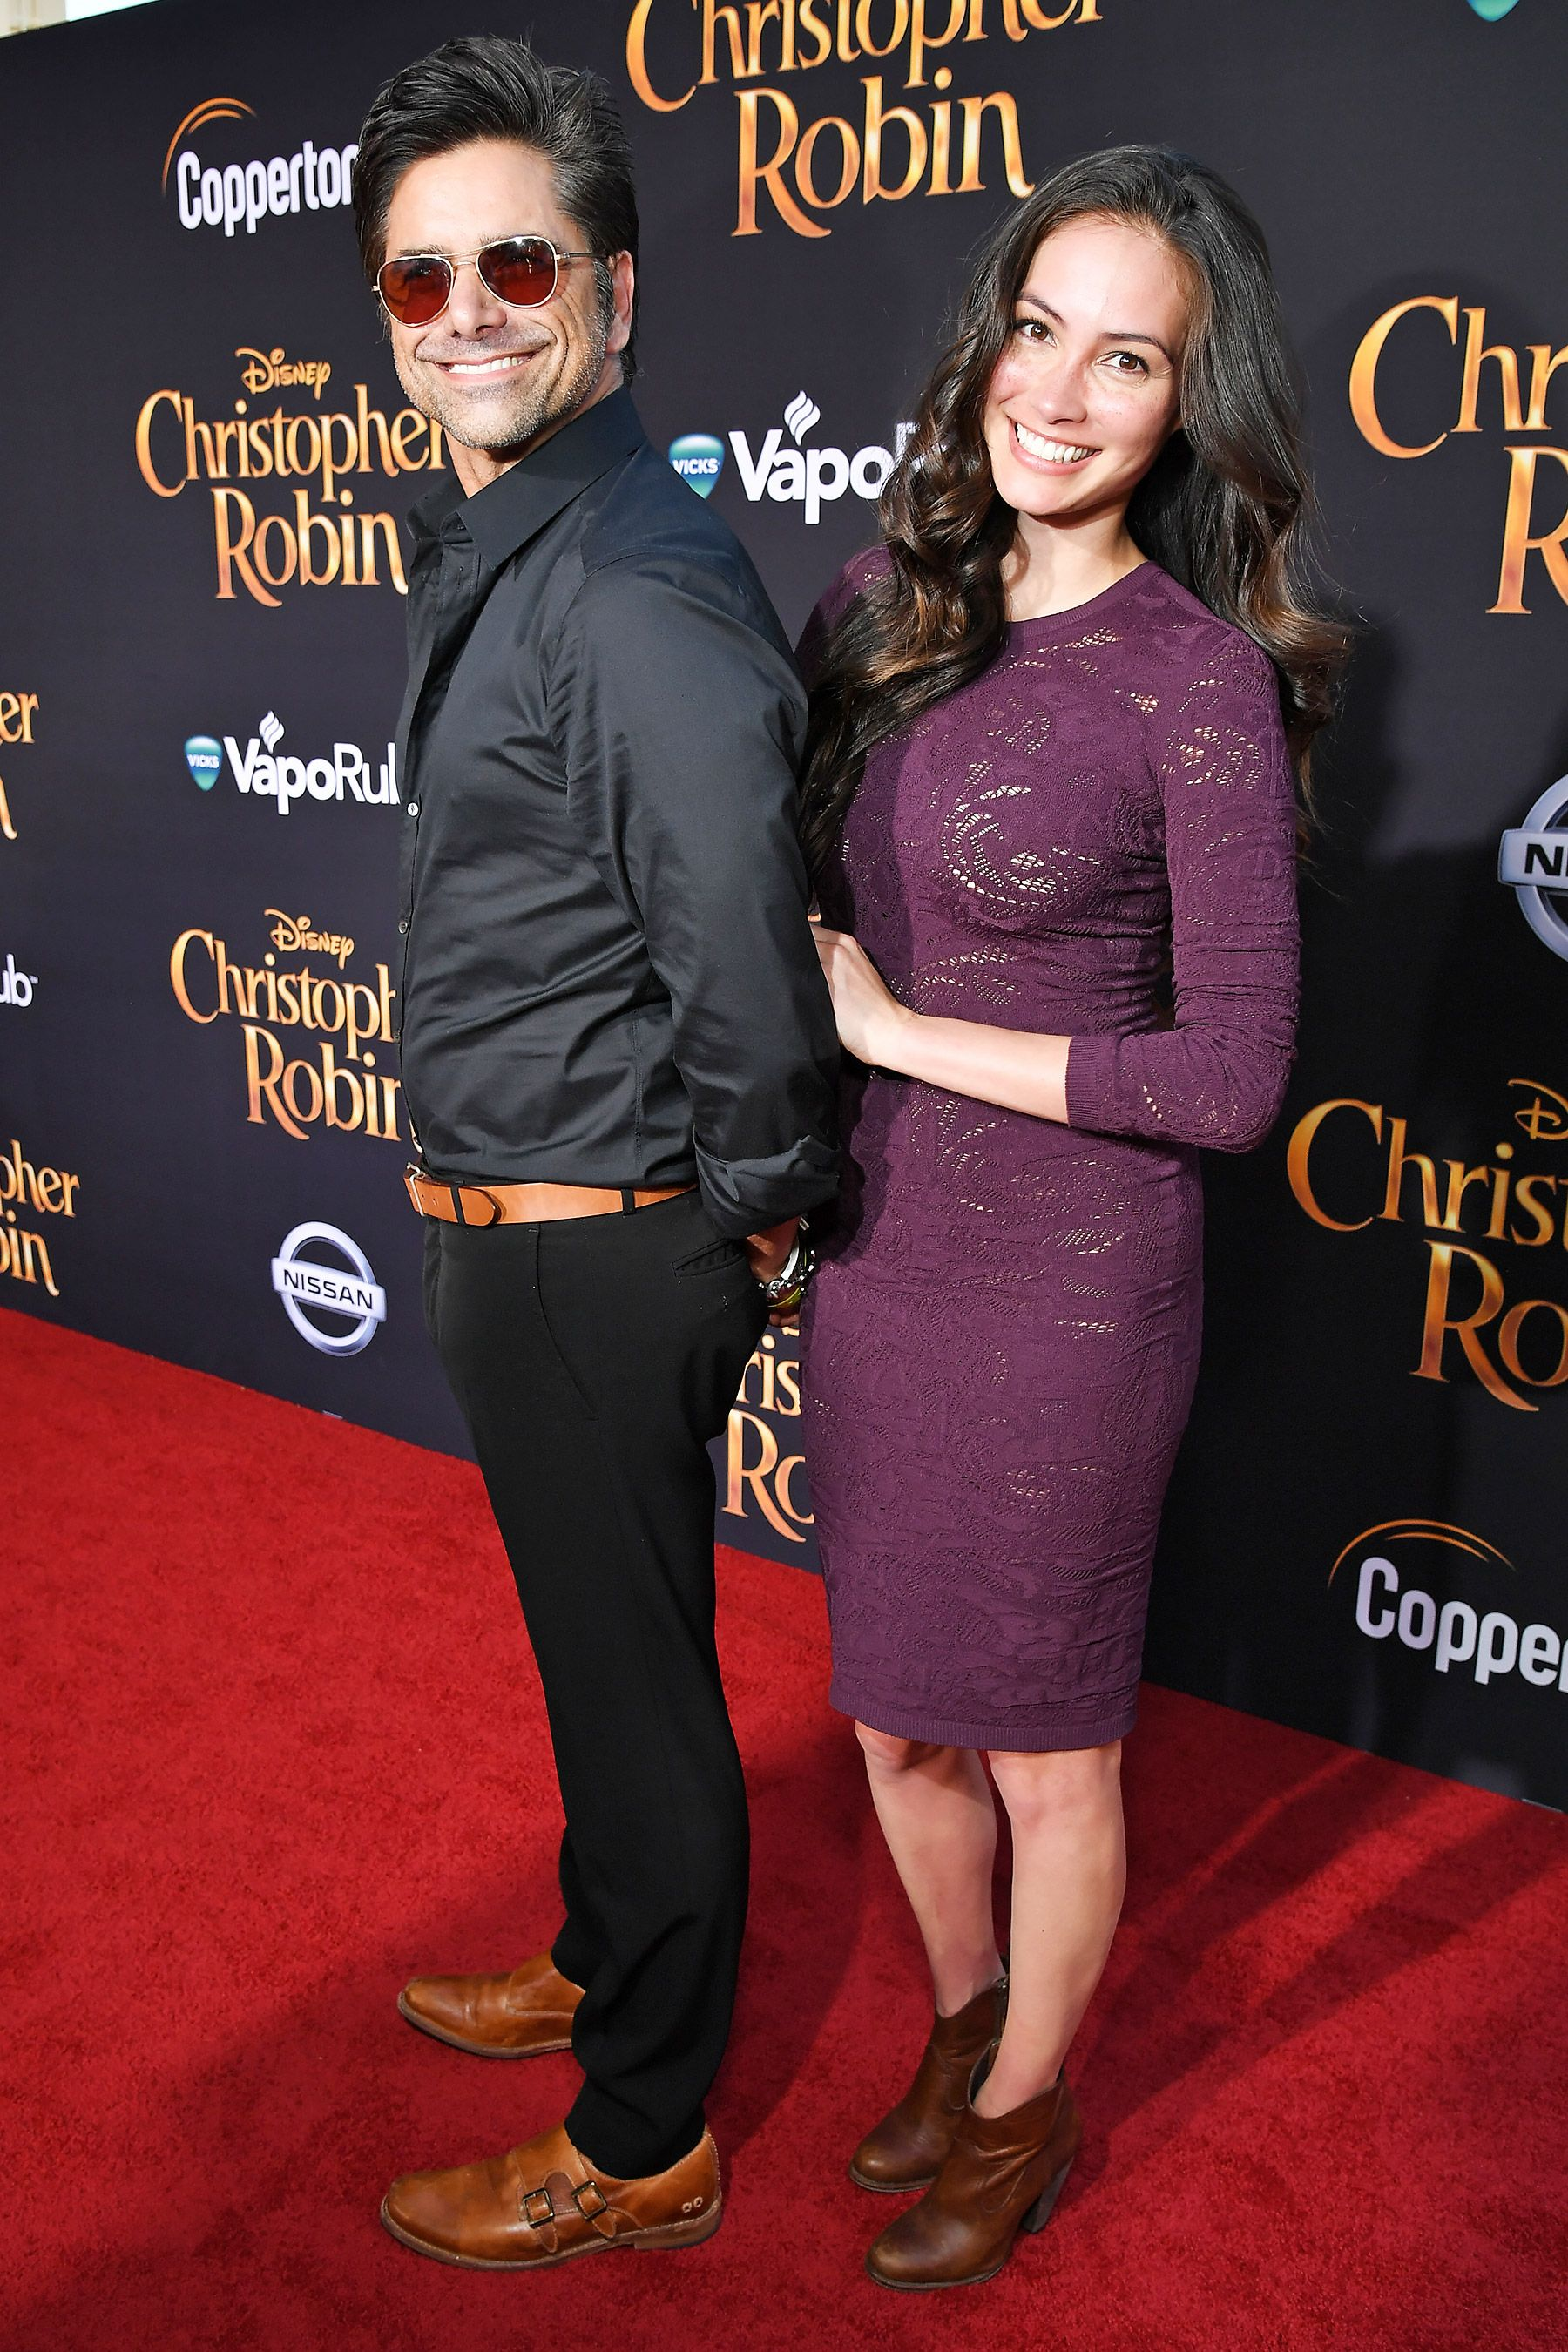 02e5b918051 John Stamos and wife Caitlin McHugh, who are also parents to adorable son  Billy, are one cute couple at the L.A. premiere of Christopher Robin on  Monday.